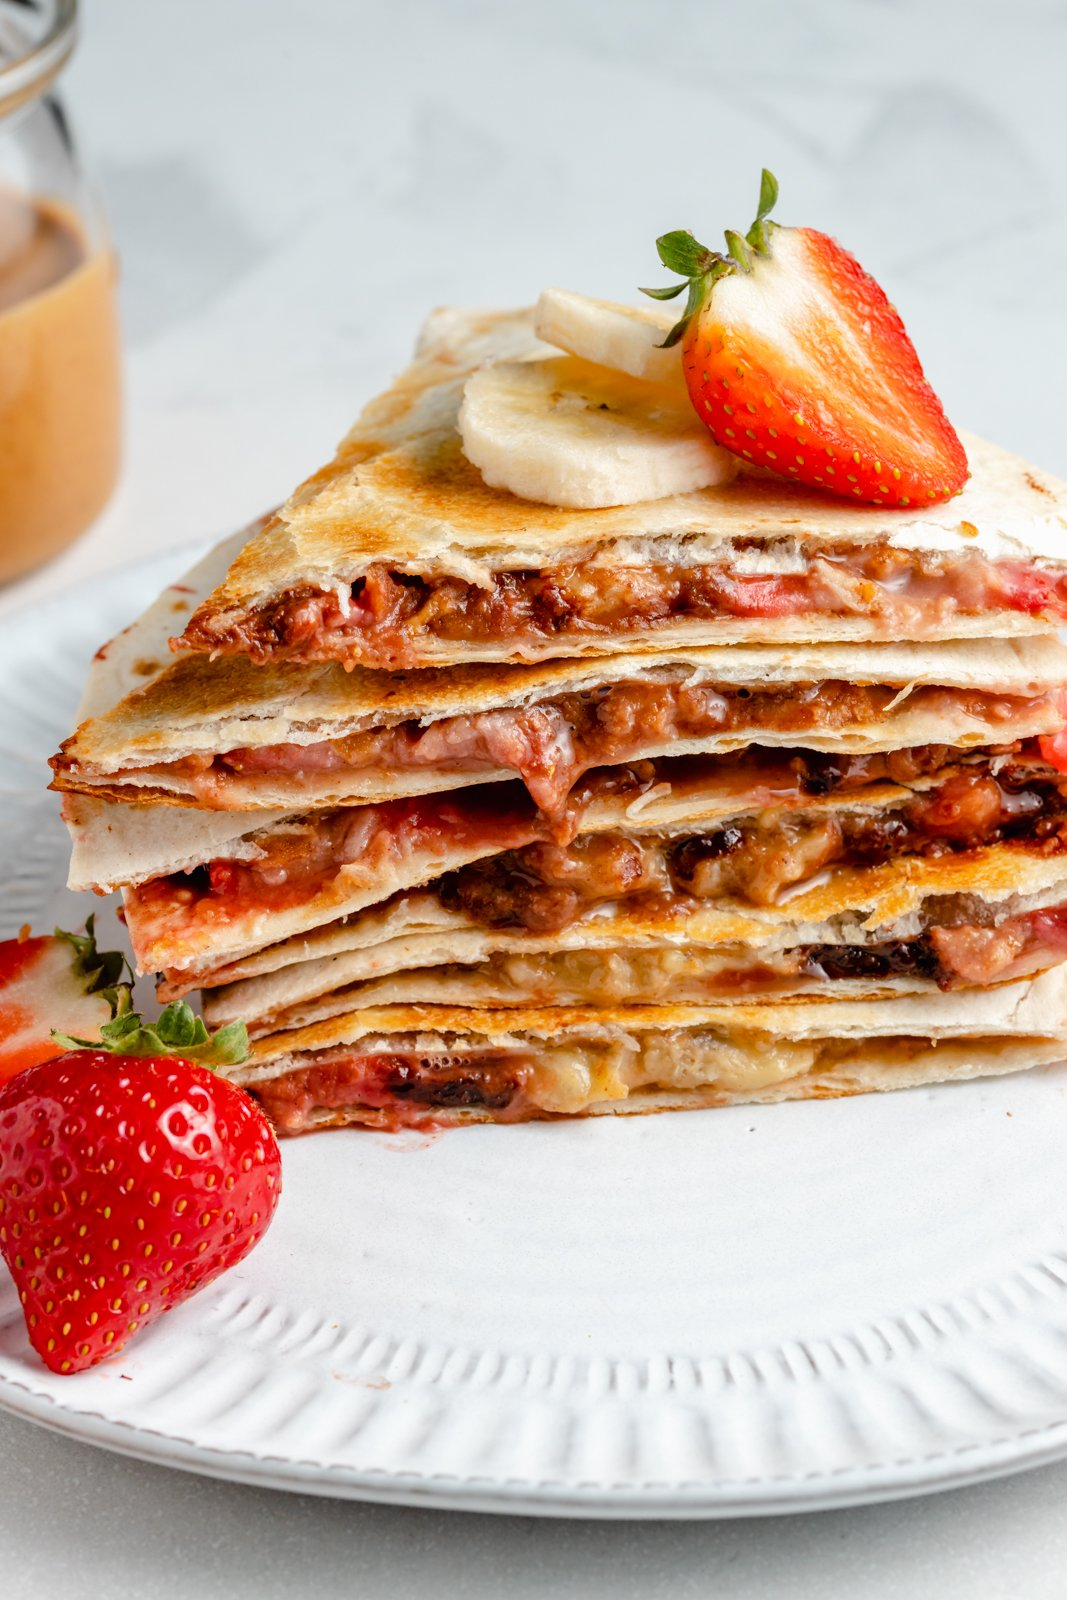 strawberry banana quesadilla stacked on a plate